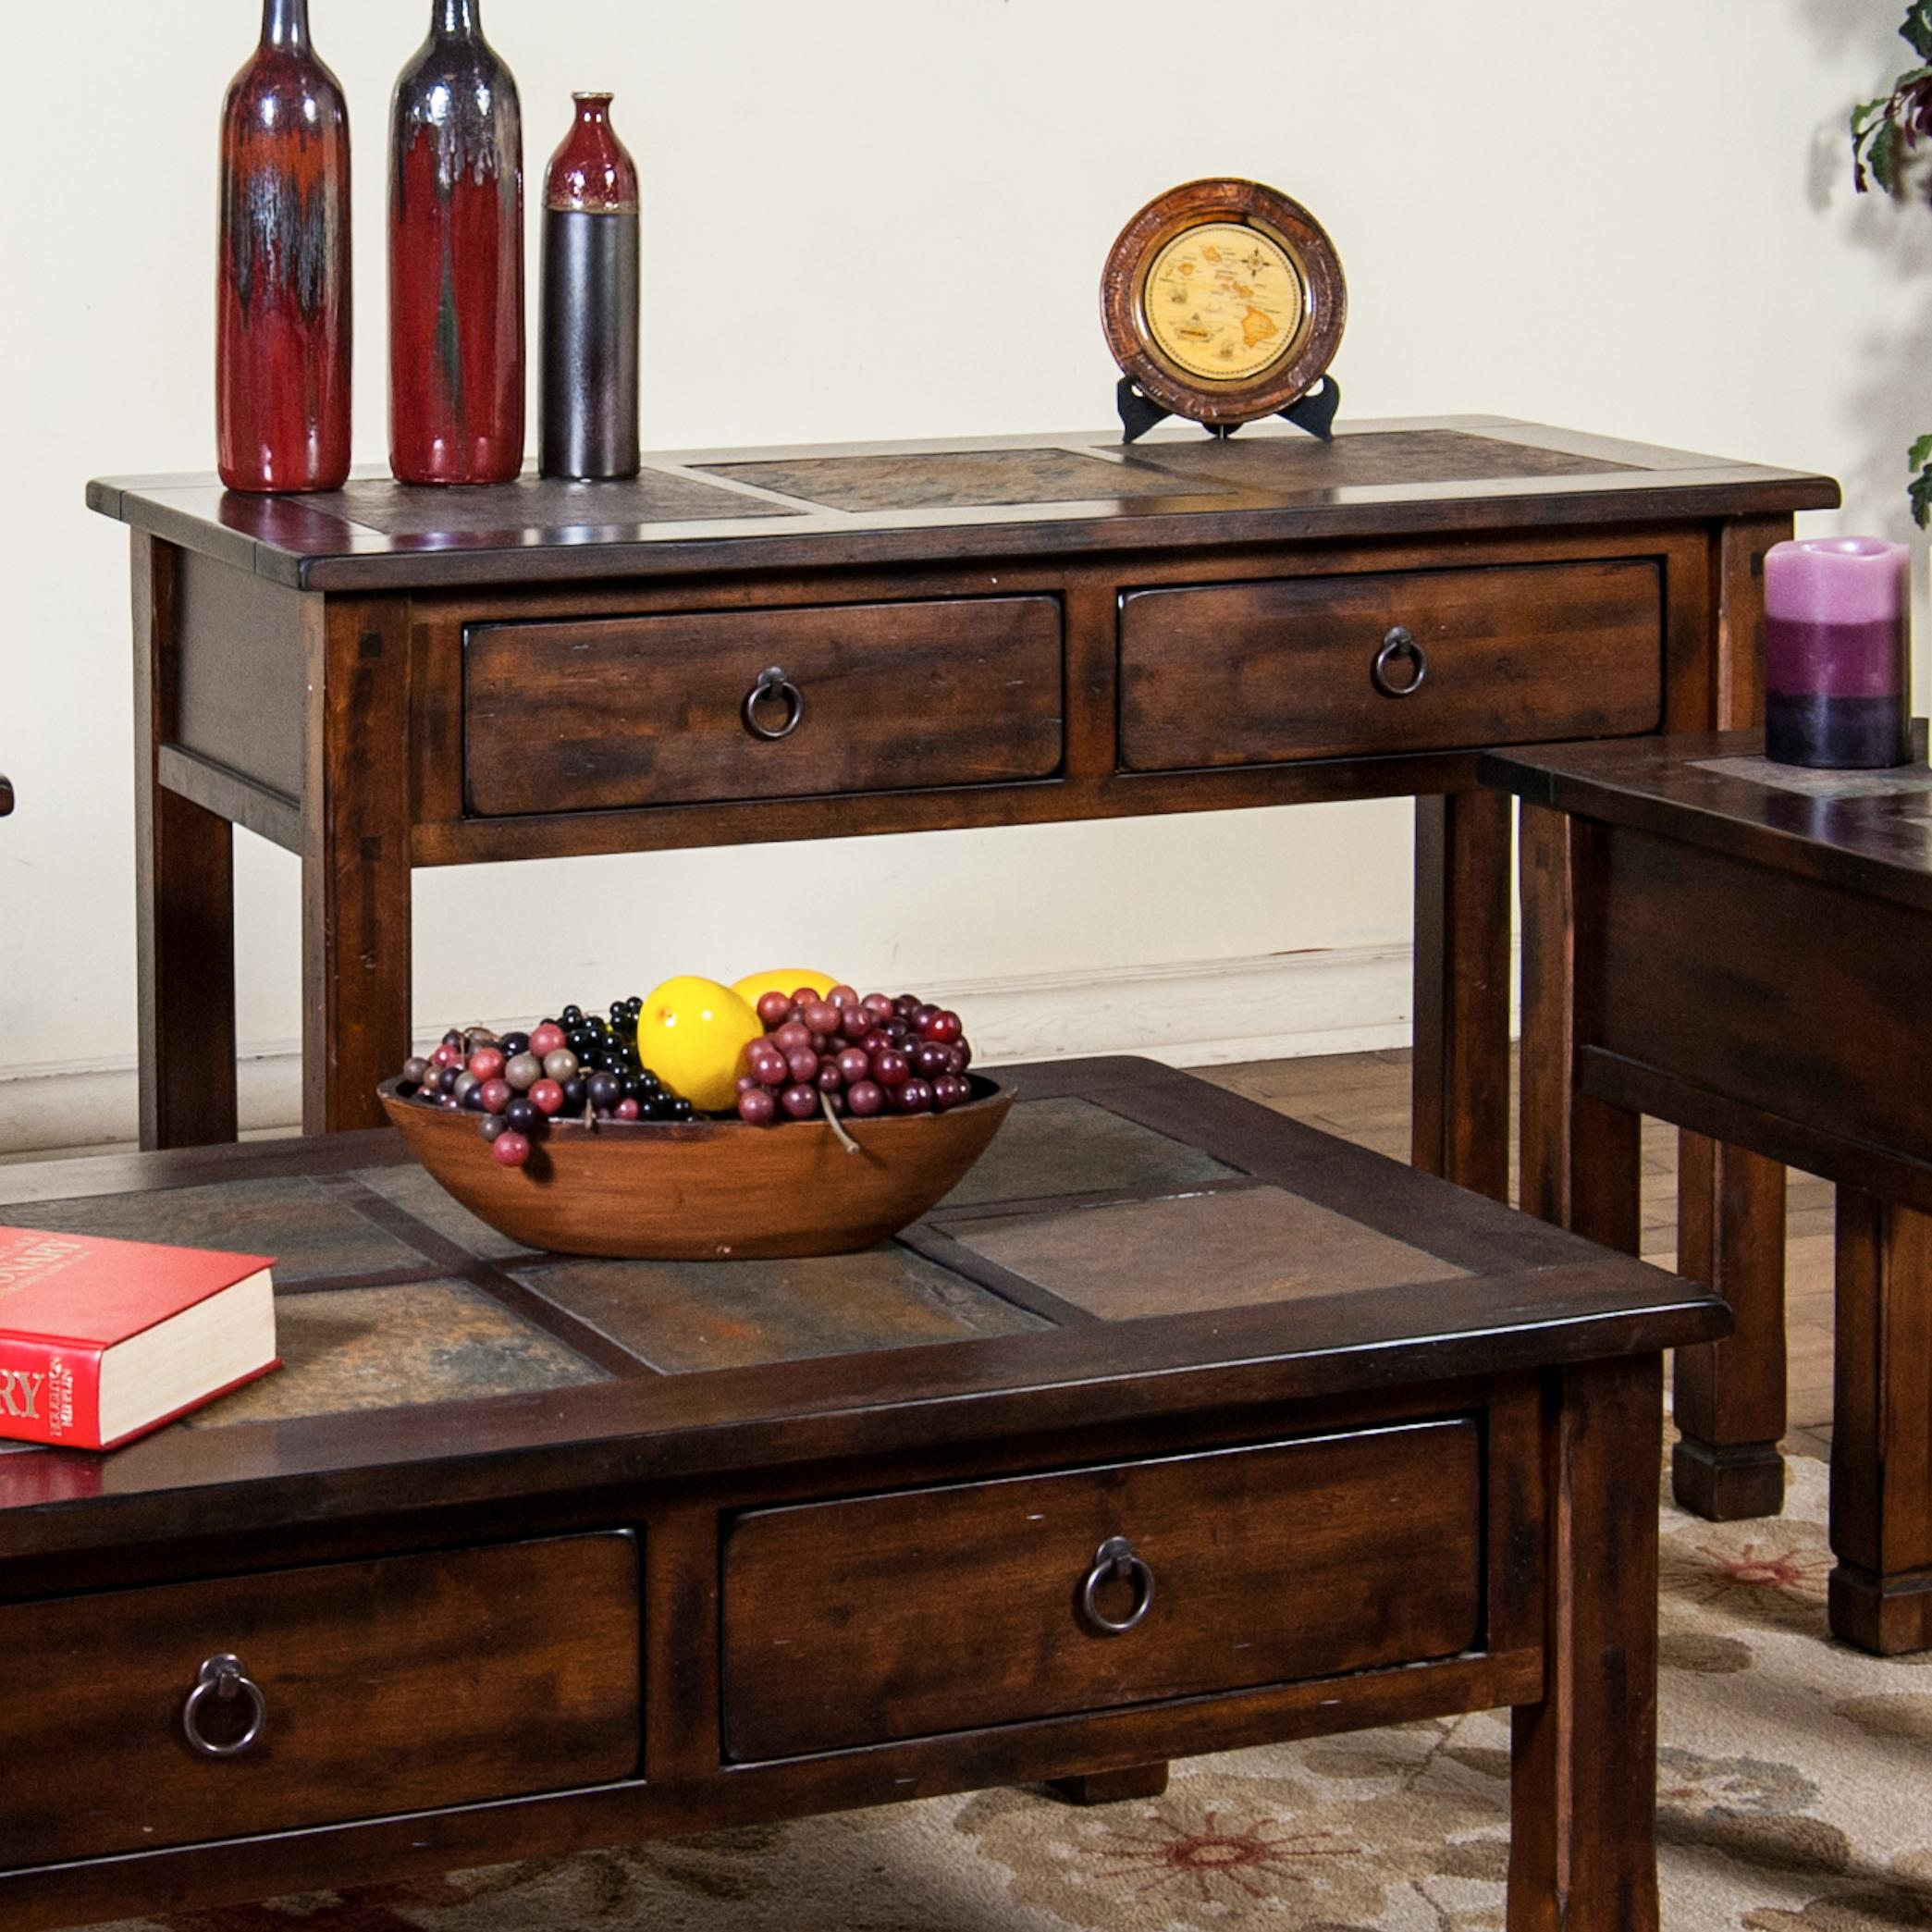 slate sofa table big lots 5 in 1 bed reviews console w top by sunny designs wolf